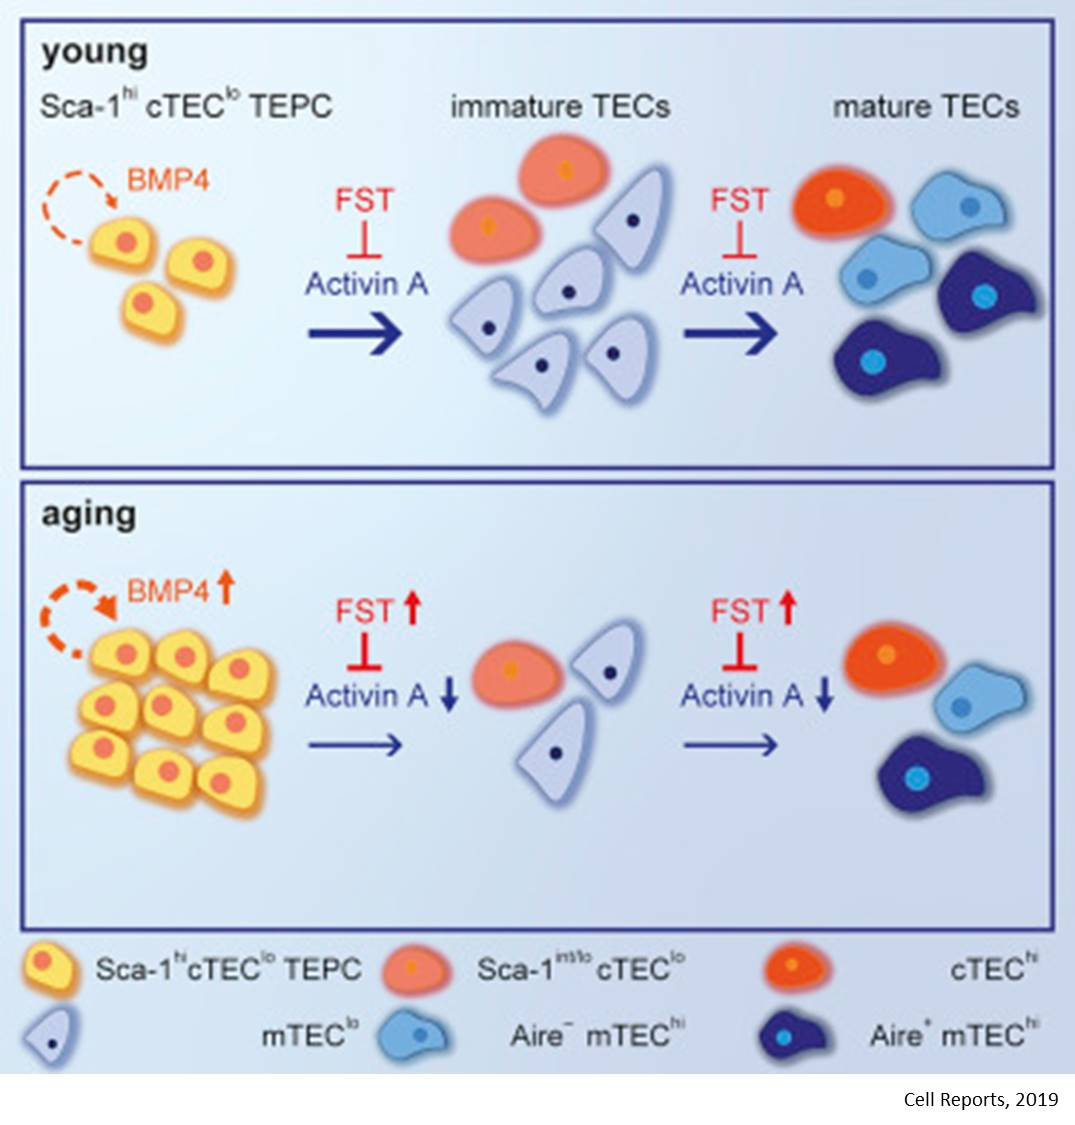 Mechanism of immune system aging